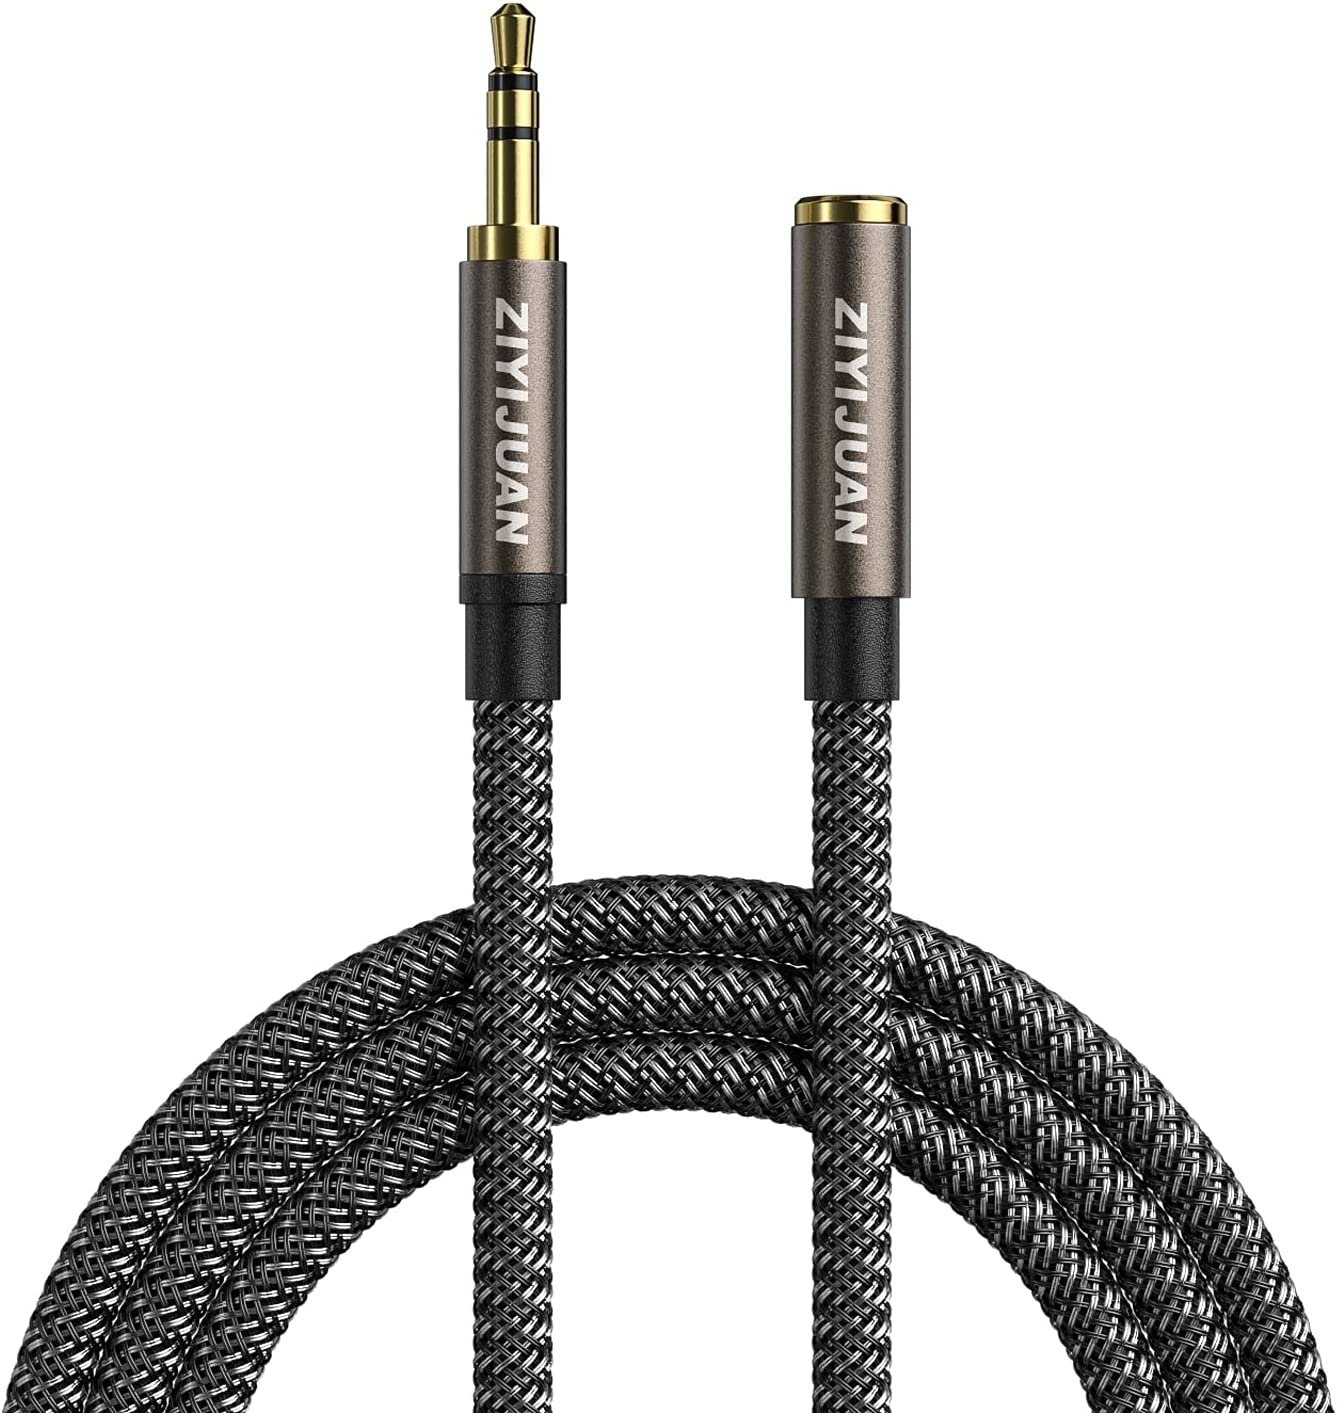 Headphone Extension Cable, 3.5mm 8ft/2.5m Male to Female Stereo Audio Cable Lossless Audio Sound Premium Audio Cord Extension Cable Gold Plated Jack & Strong Nylon Braided…